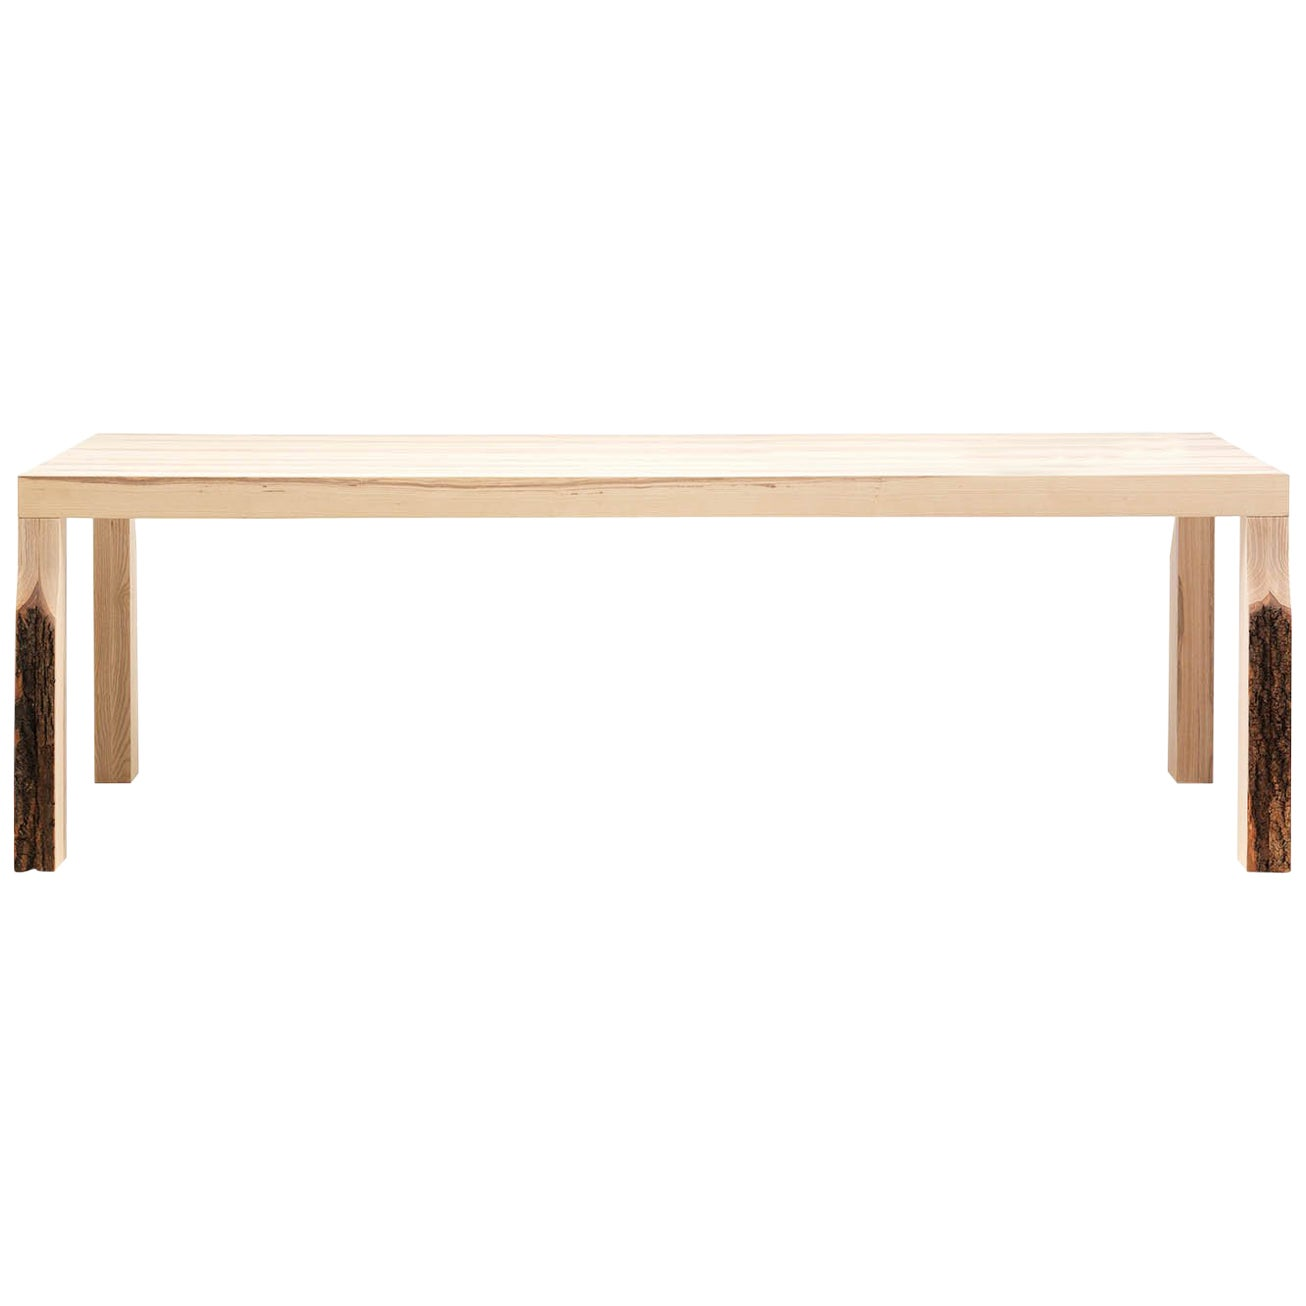 Cross Fade Natural Dining Table by Mogg